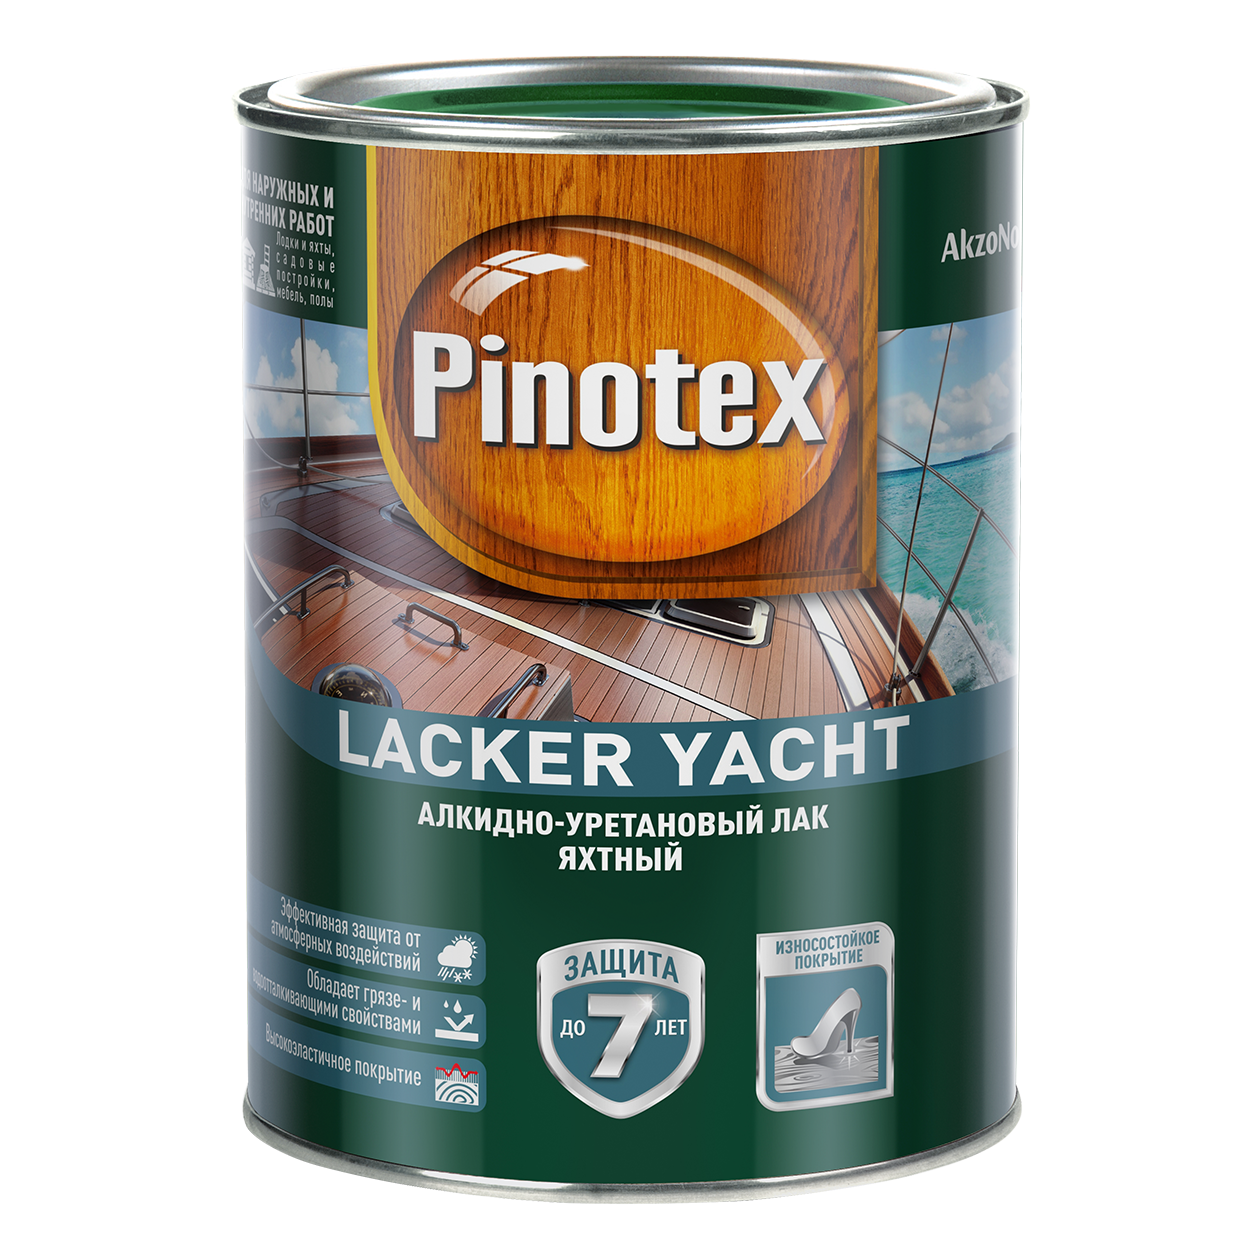 Pinotex Lacker Yacht